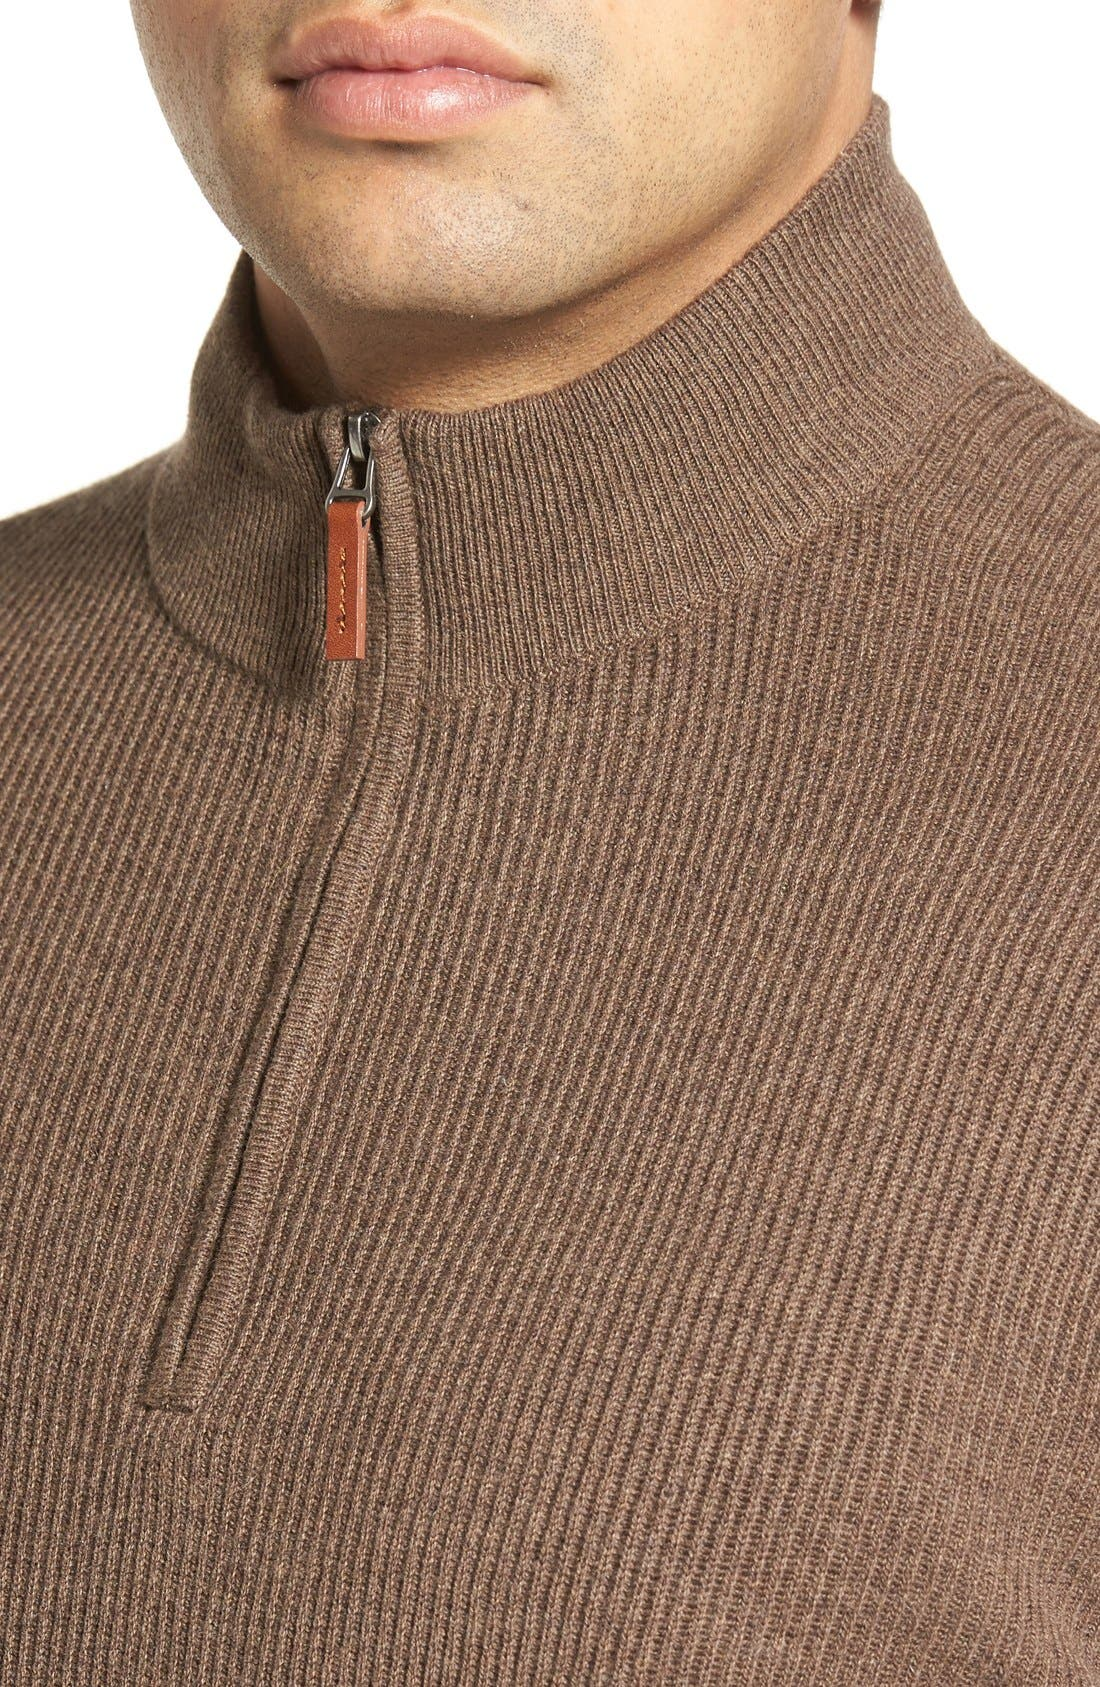 Alternate Image 4  - Nordstrom Men's Shop Cotton & Cashmere Rib Knit Sweater (Regular & Tall)